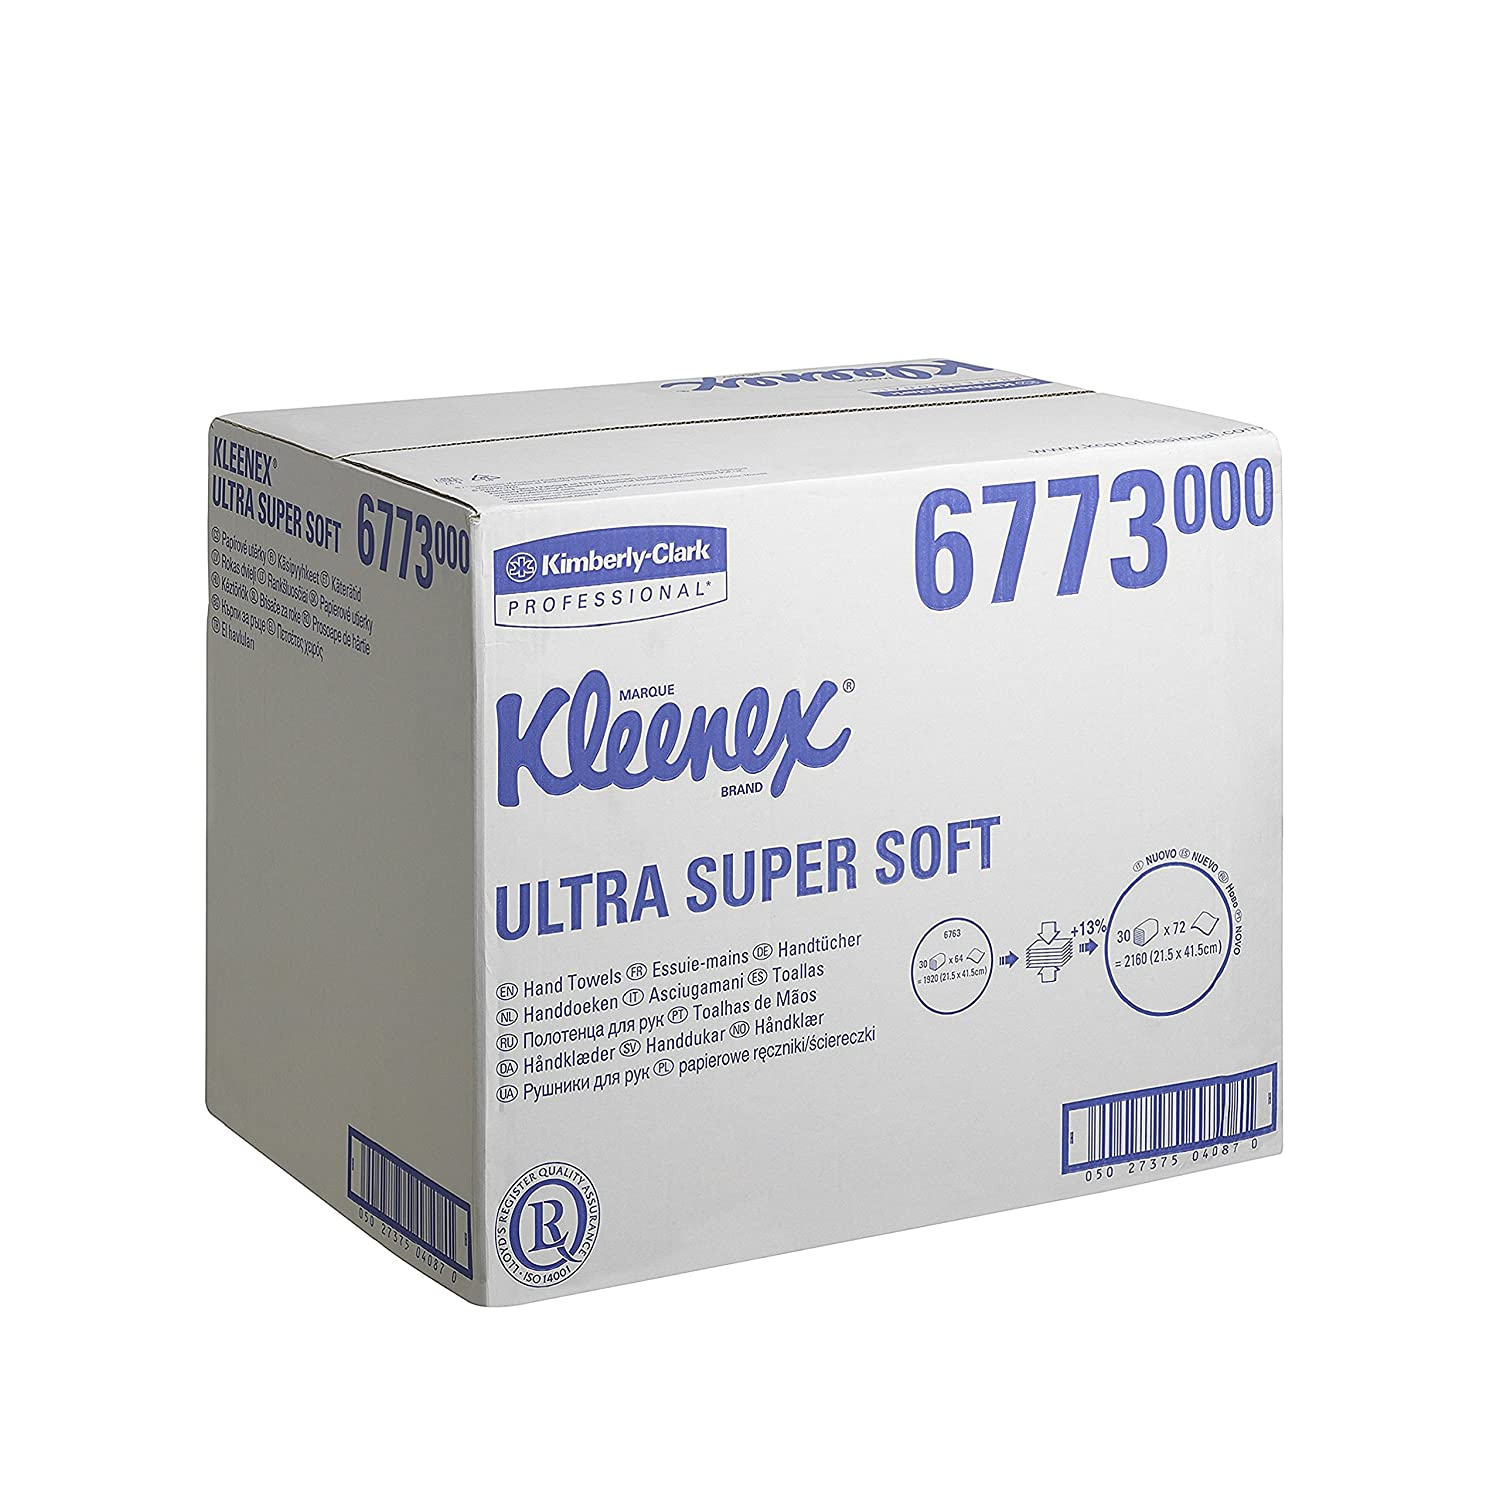 Kleenex 6773 Ultra Super Soft Airflex Hand Towels, Interfolded, White, Three Ply Sheets Per Pack, 72 (Box Contains 30 Packs) Kimberly-Clark Professional (EU)